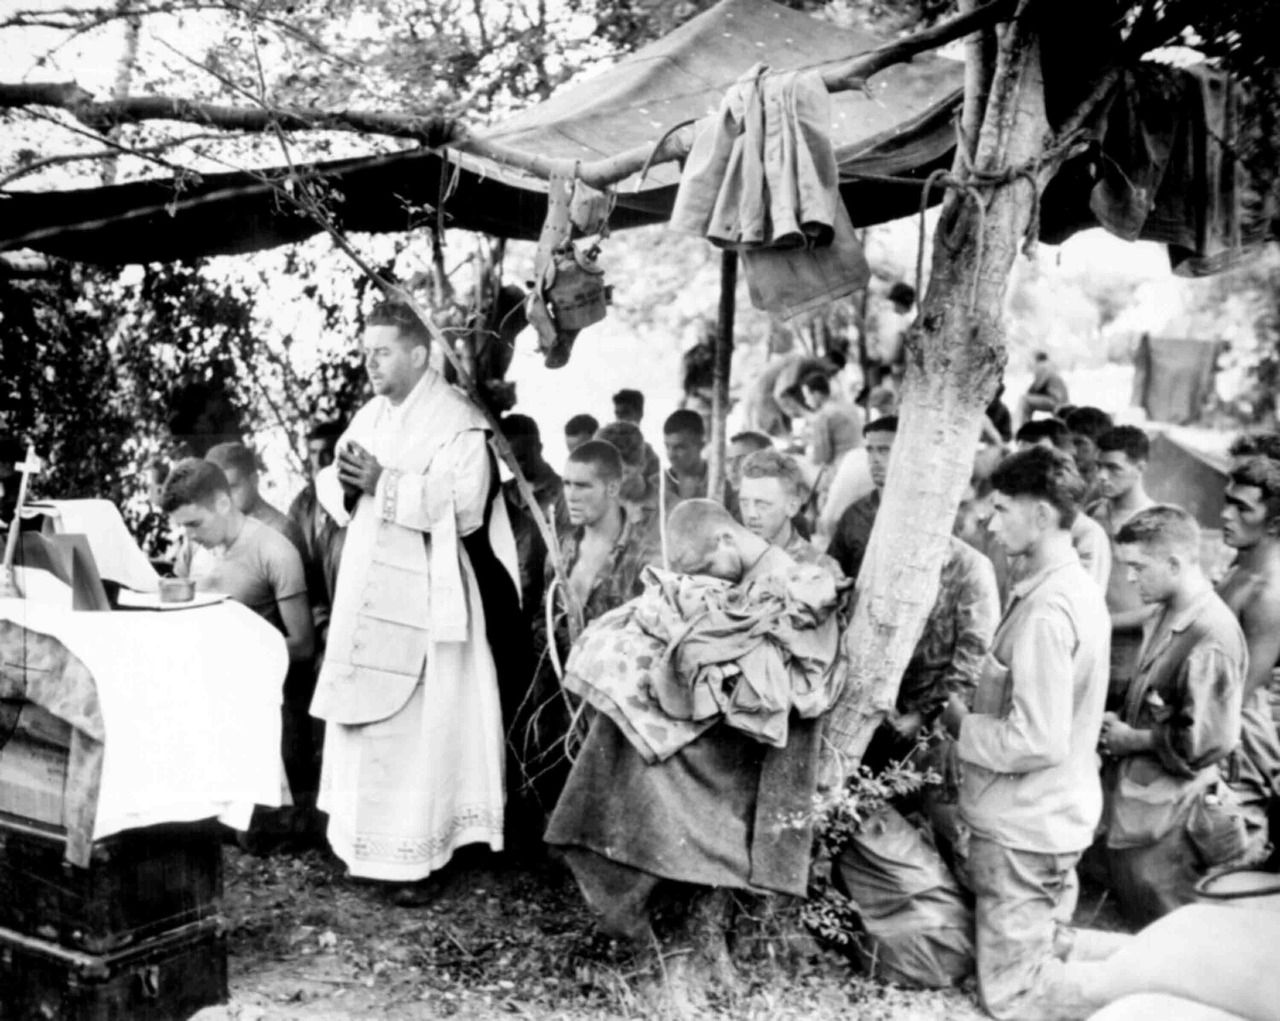 The funeral service for soldiers who died on the island of Saipan